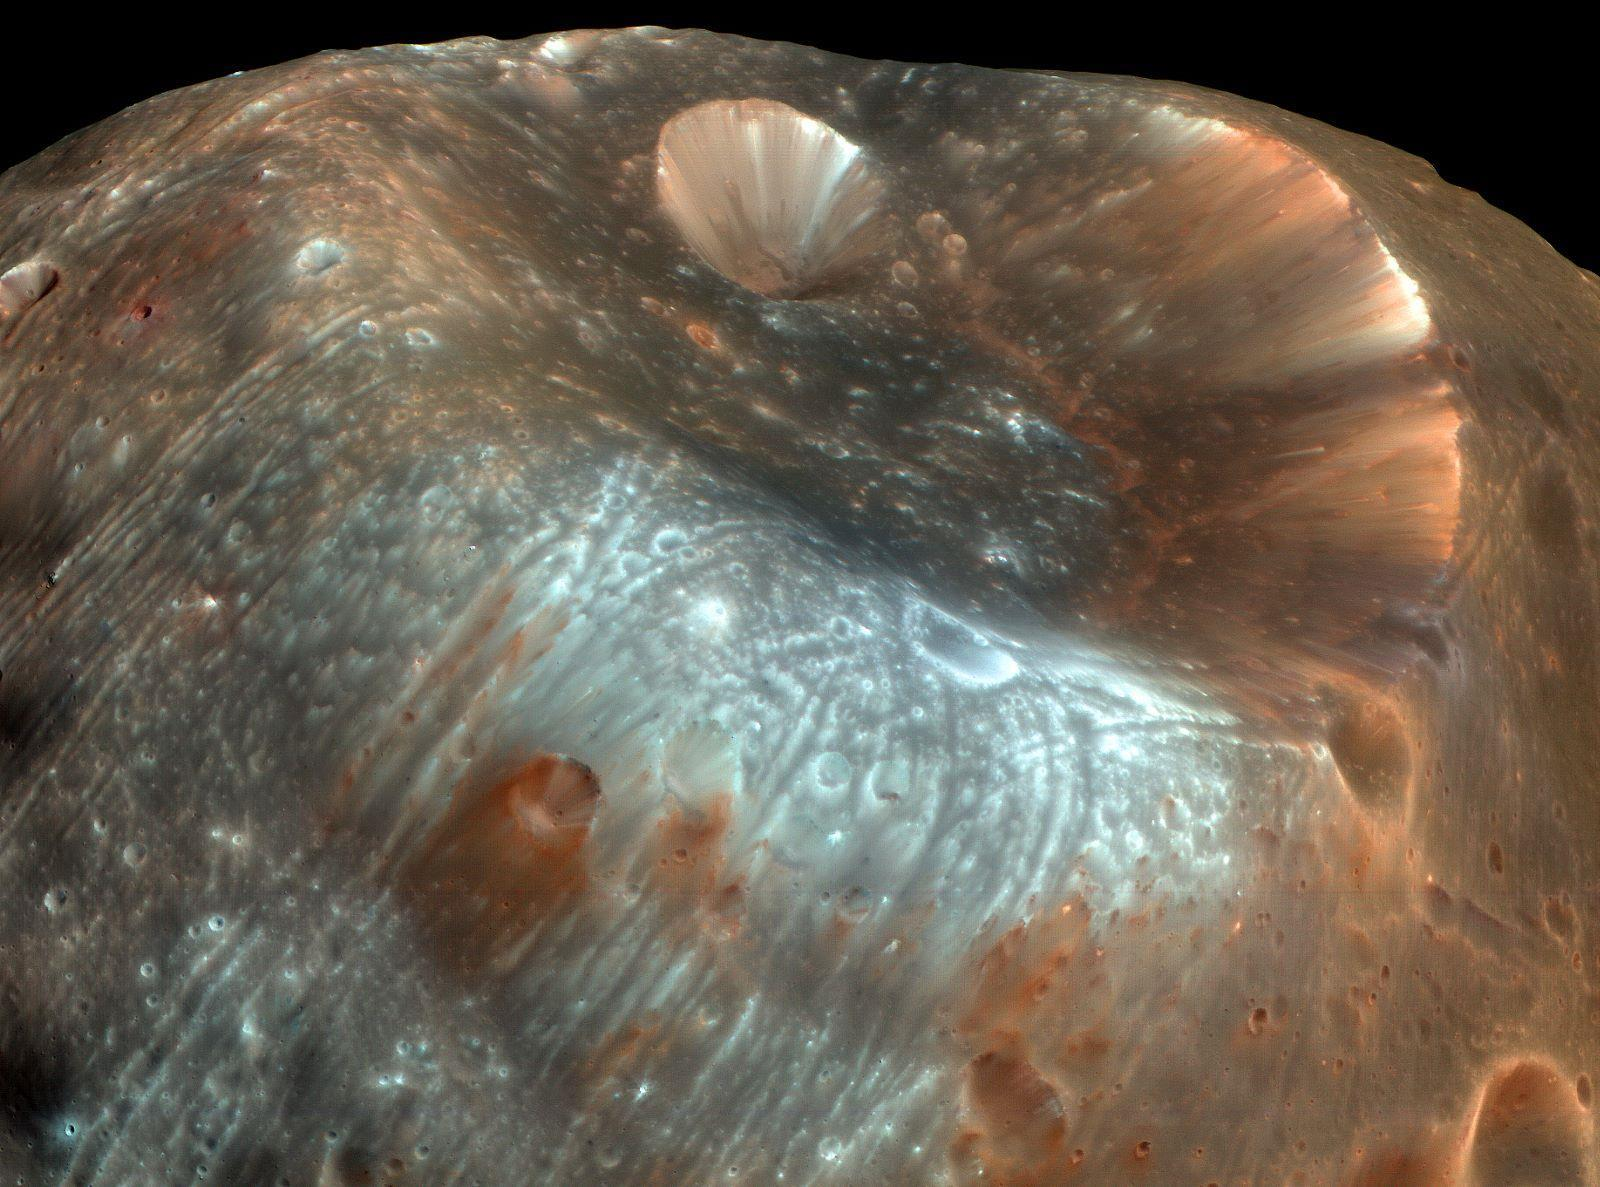 Mars_images-satellite_Stickney_Crater_Phobos_photos-by-NASA-and-ESA_best-selection-photography